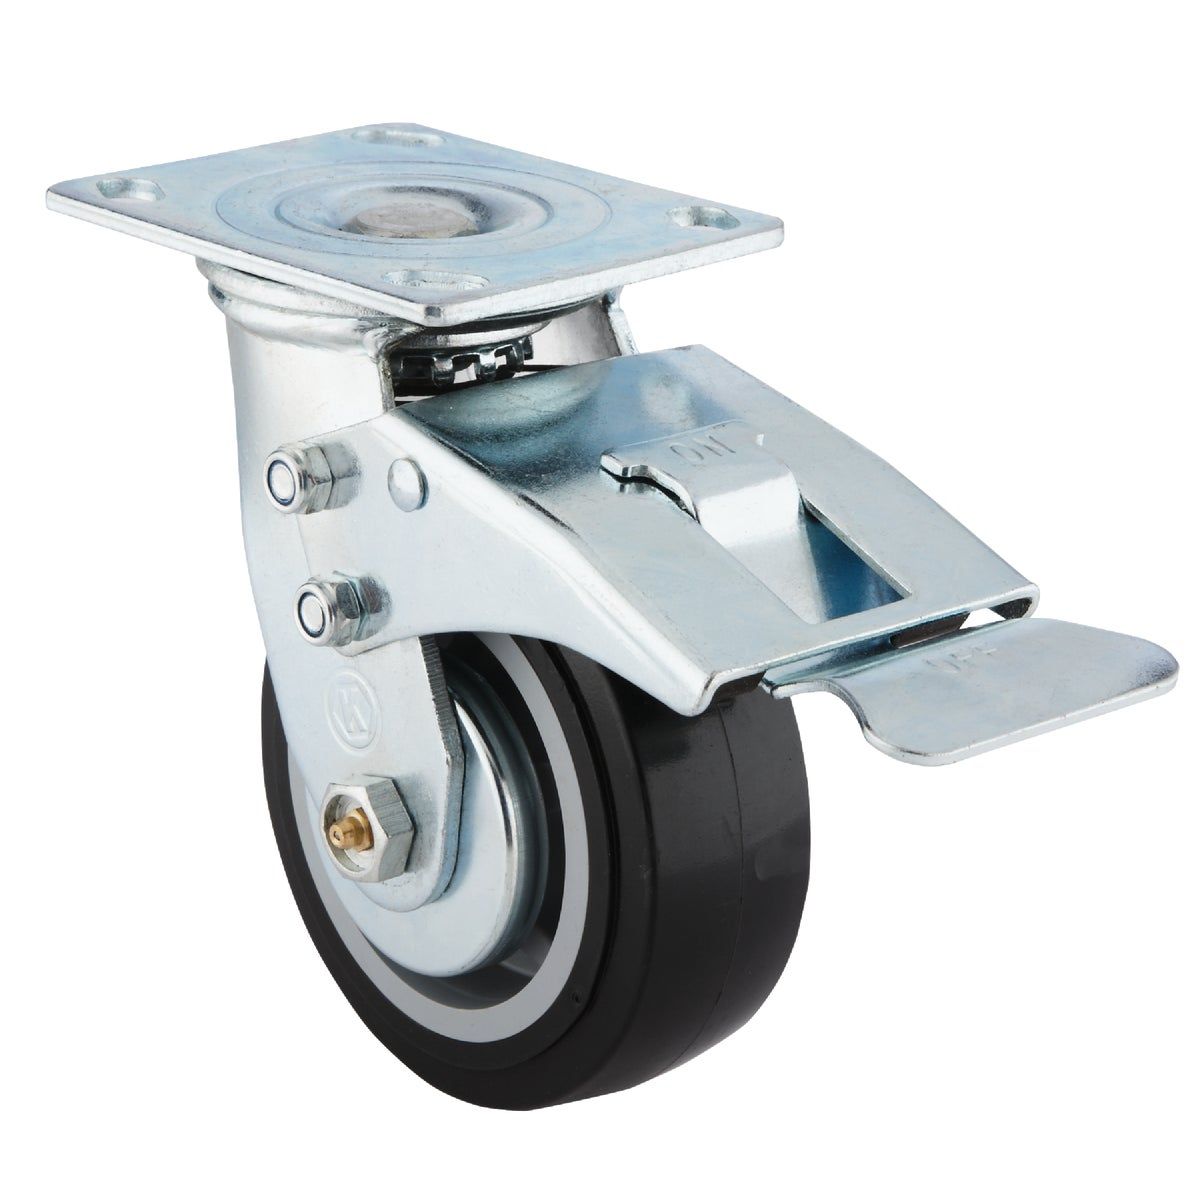 "4PC 5"" CASTERS W/BRAKE - CASTER5 by Channellock Products"